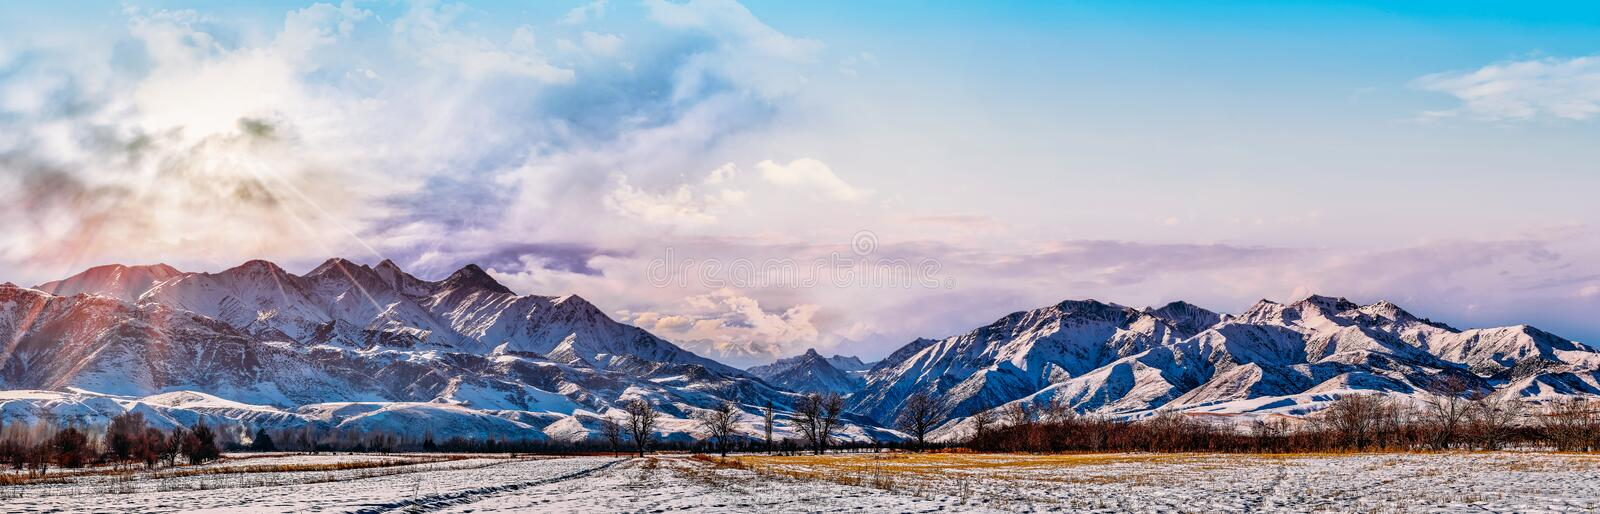 Bright sunlight through the clouds against the backdrop of a breathtaking evening, morning sky and snowy mountain peaks at sunset, royalty free stock images